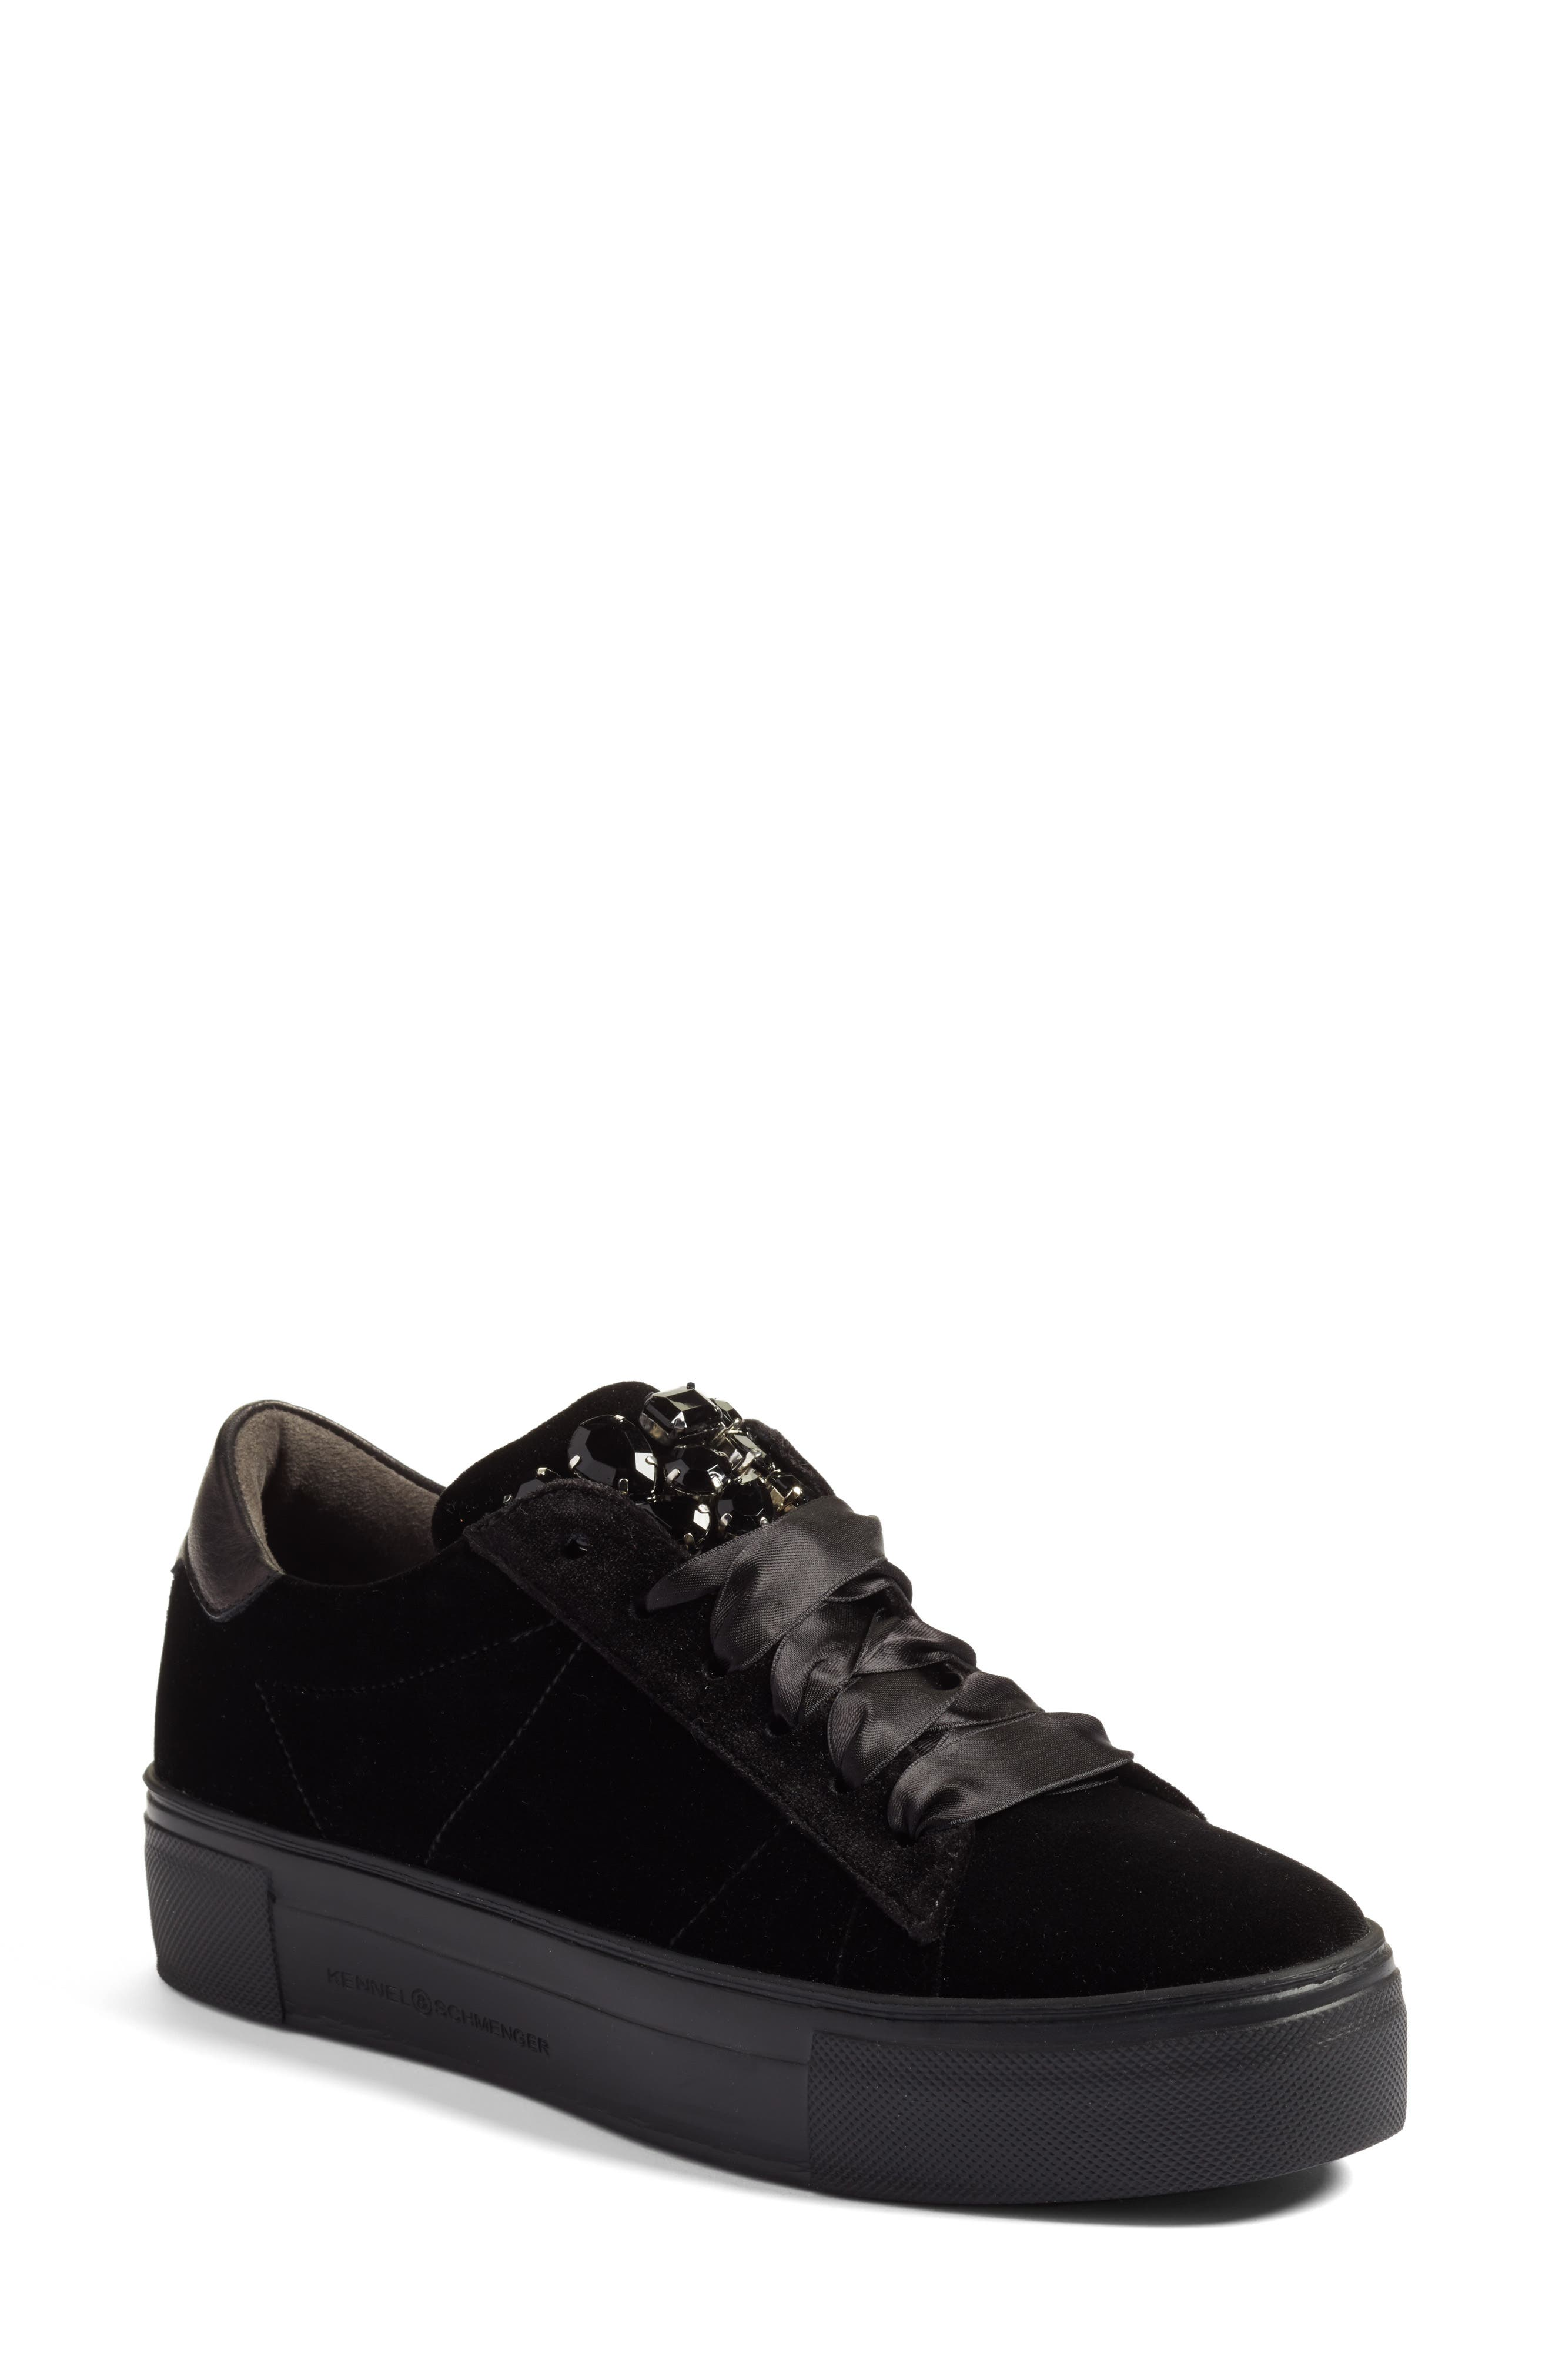 Alternate Image 1 Selected - Kennel & Schmenger Big Velvet Lace-Up Sneaker (Women)